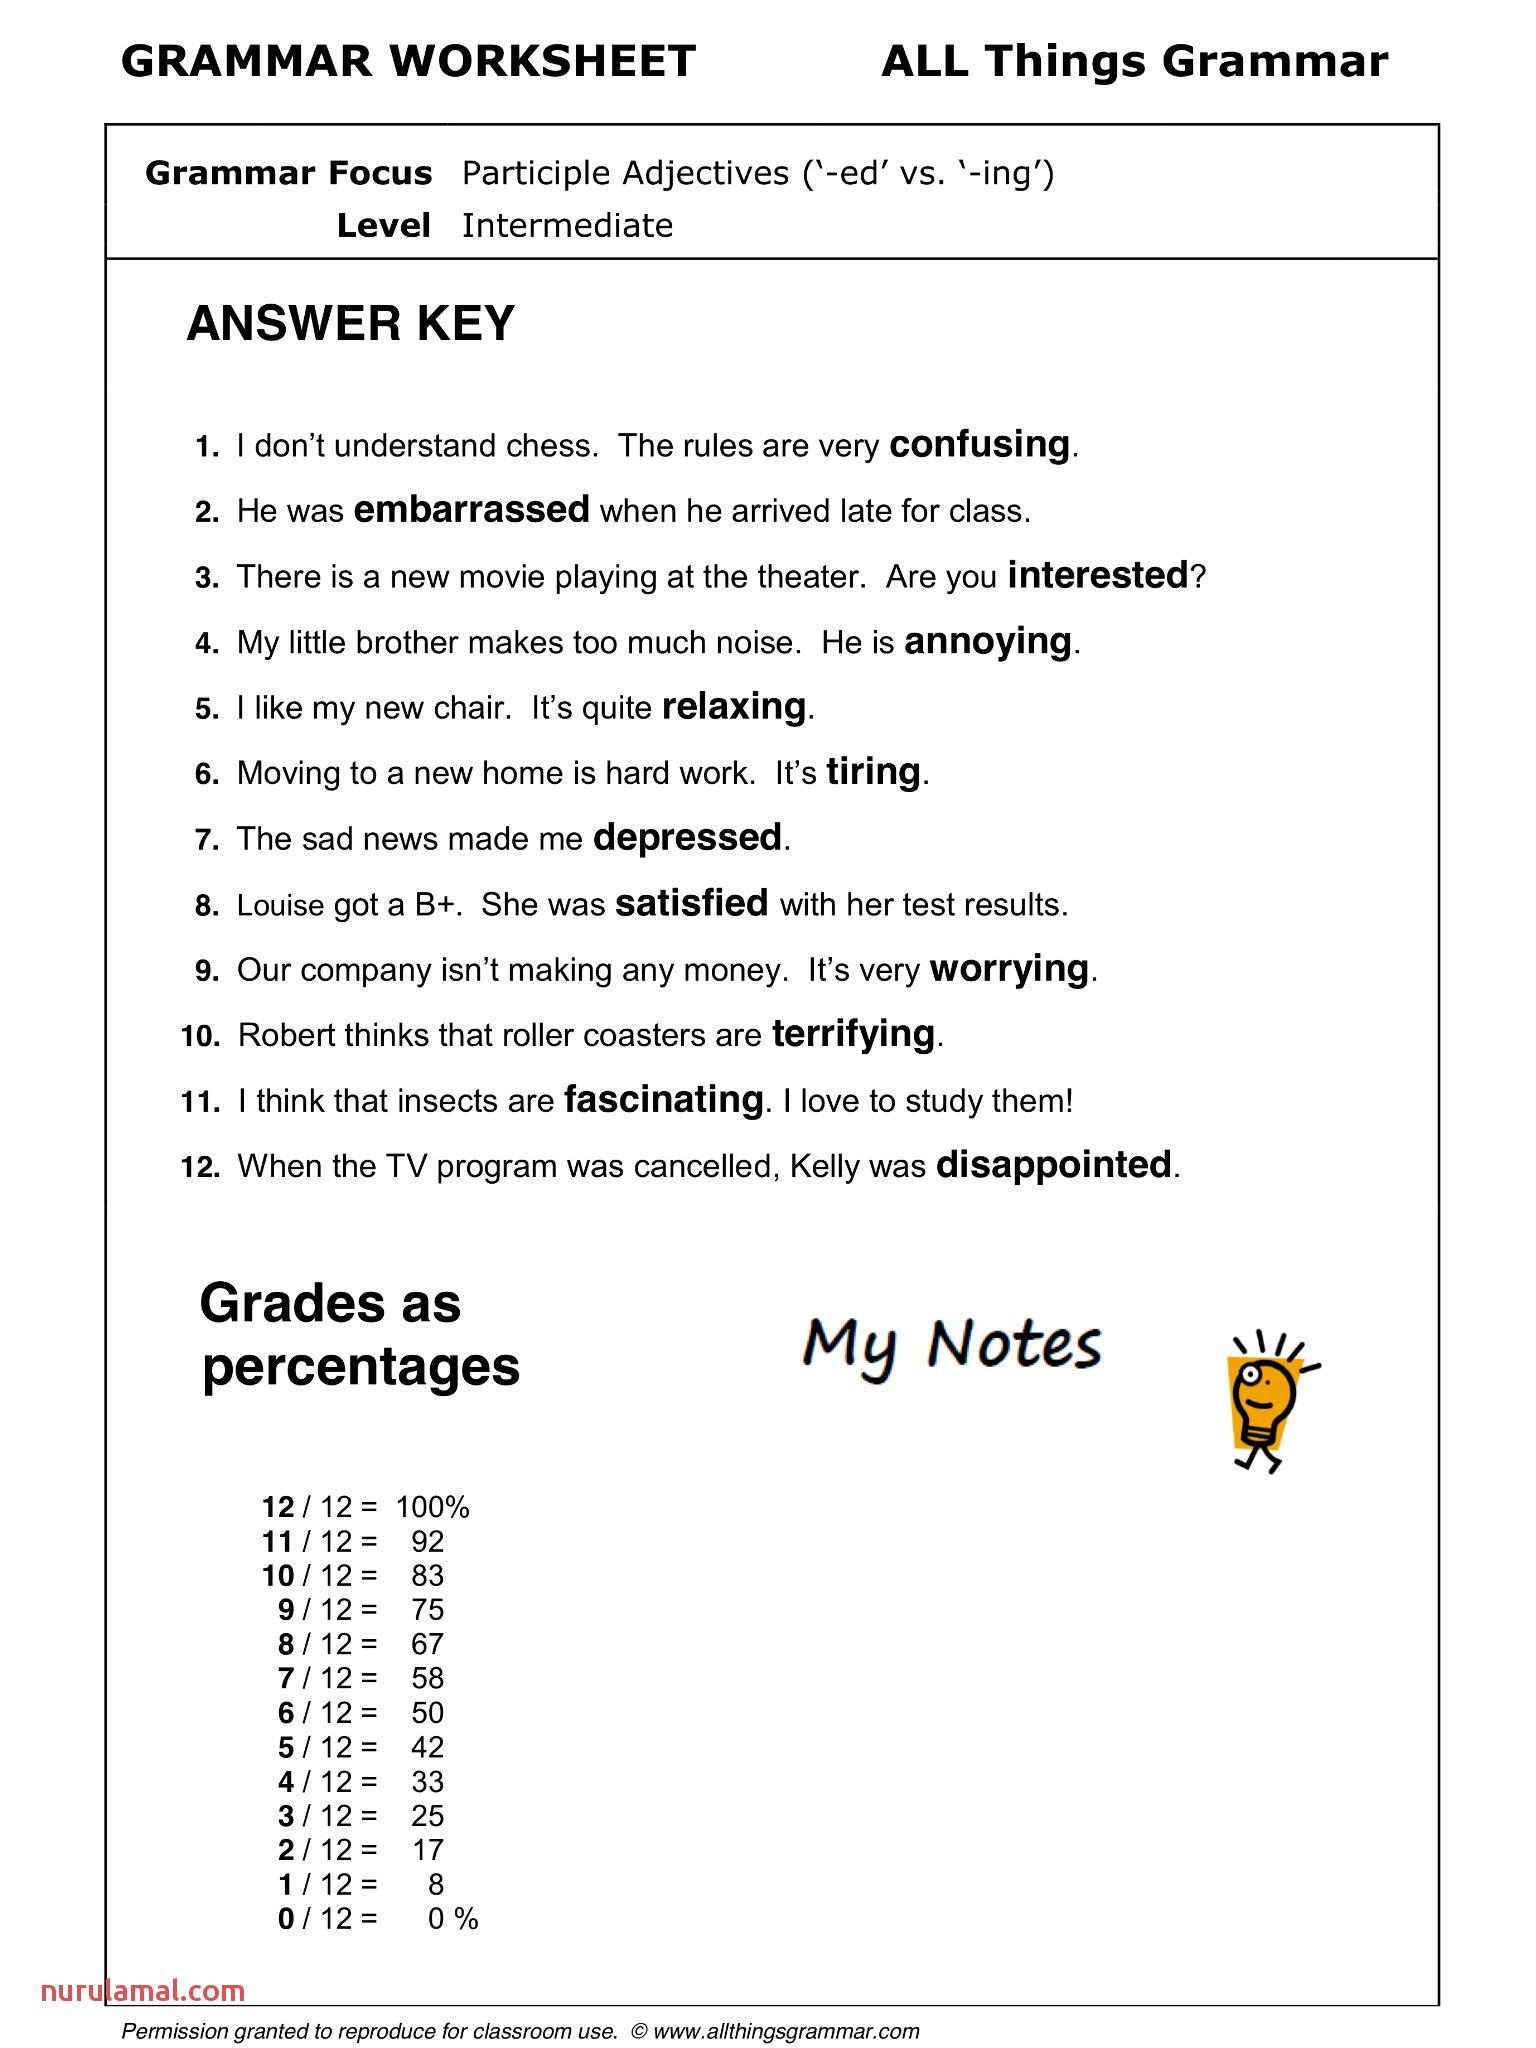 english grammar participle adjectives allthingsgrammar worksheets for grade with answers worksheet ideas splendid photo